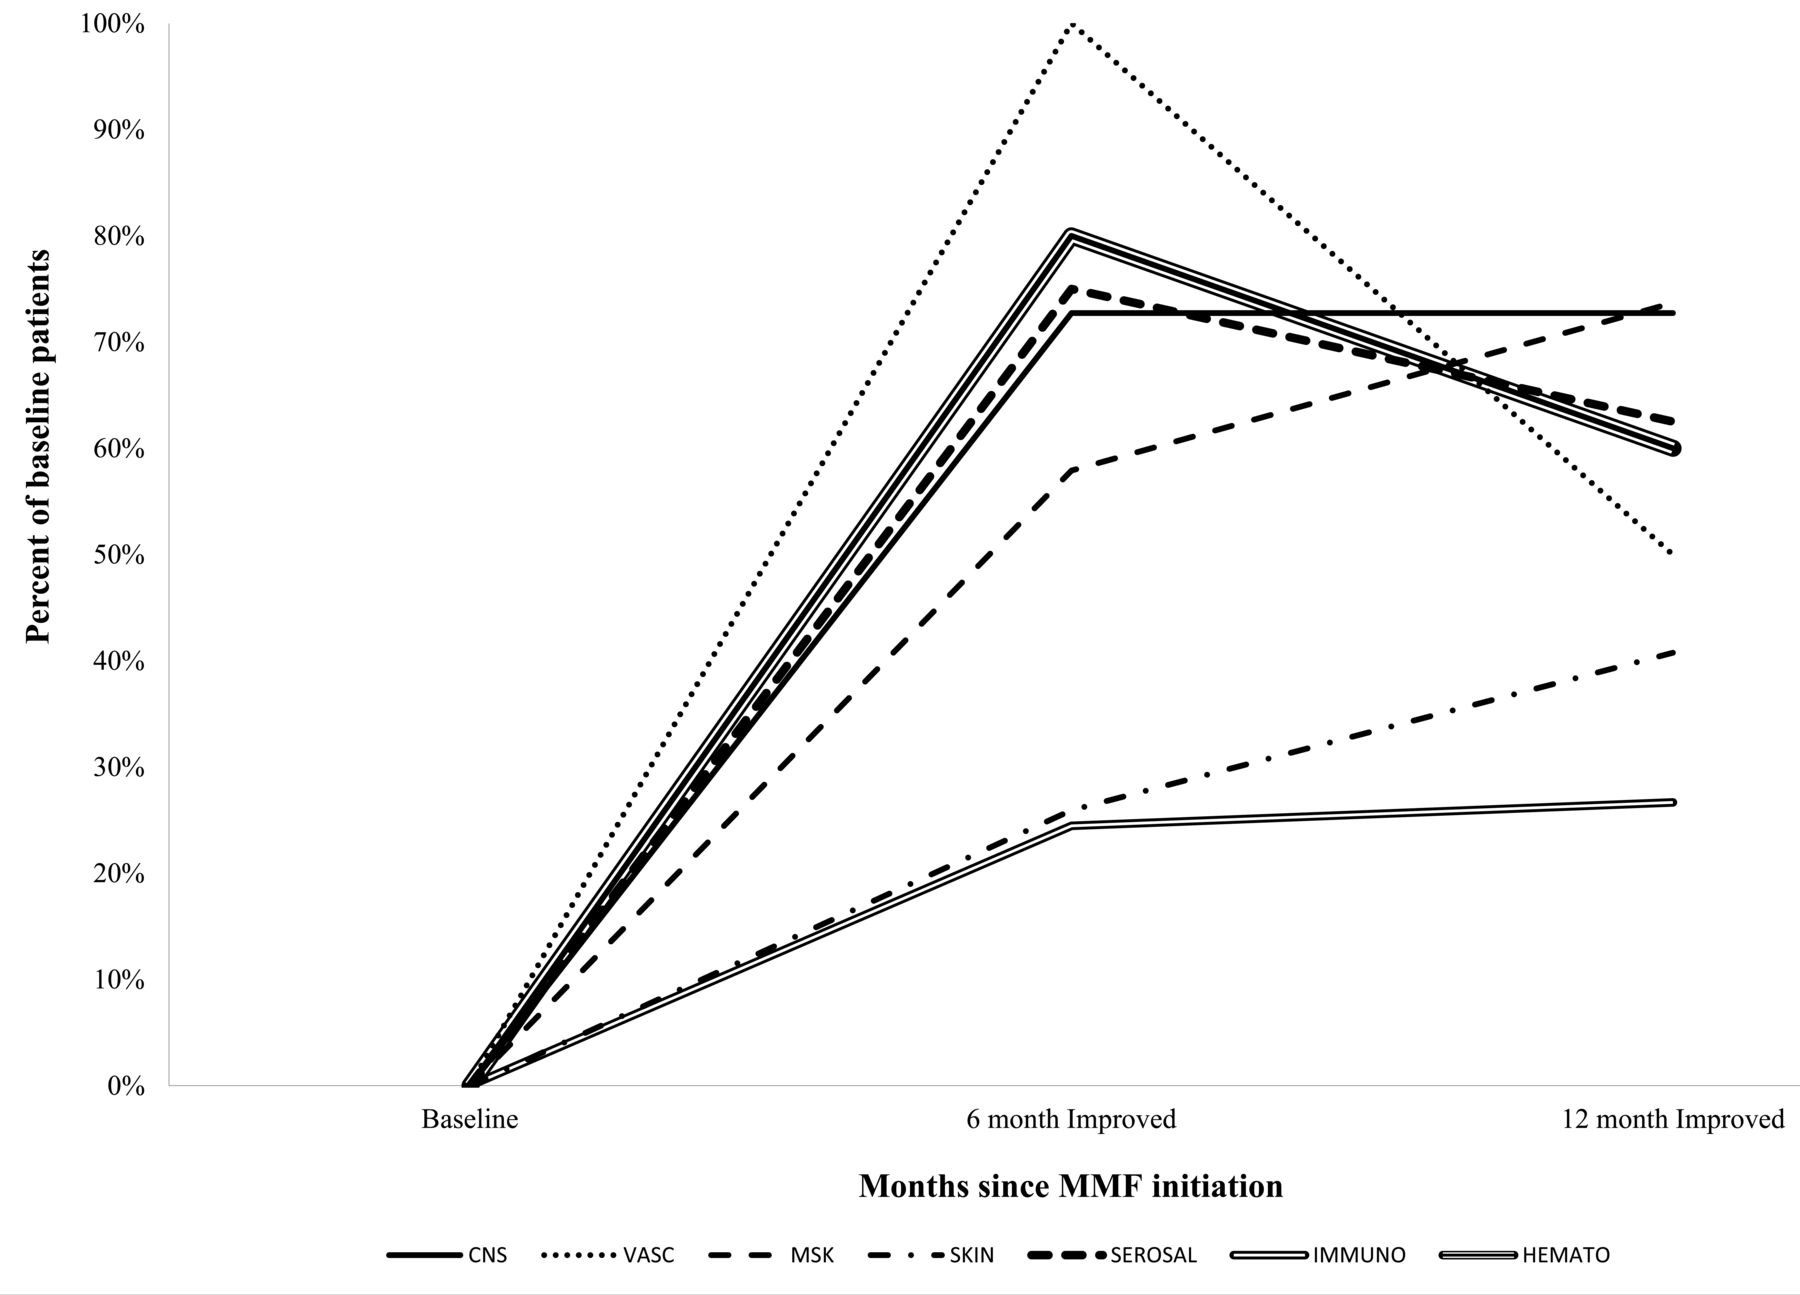 Mycophenolate Mofetil in Nonrenal Manifestations of